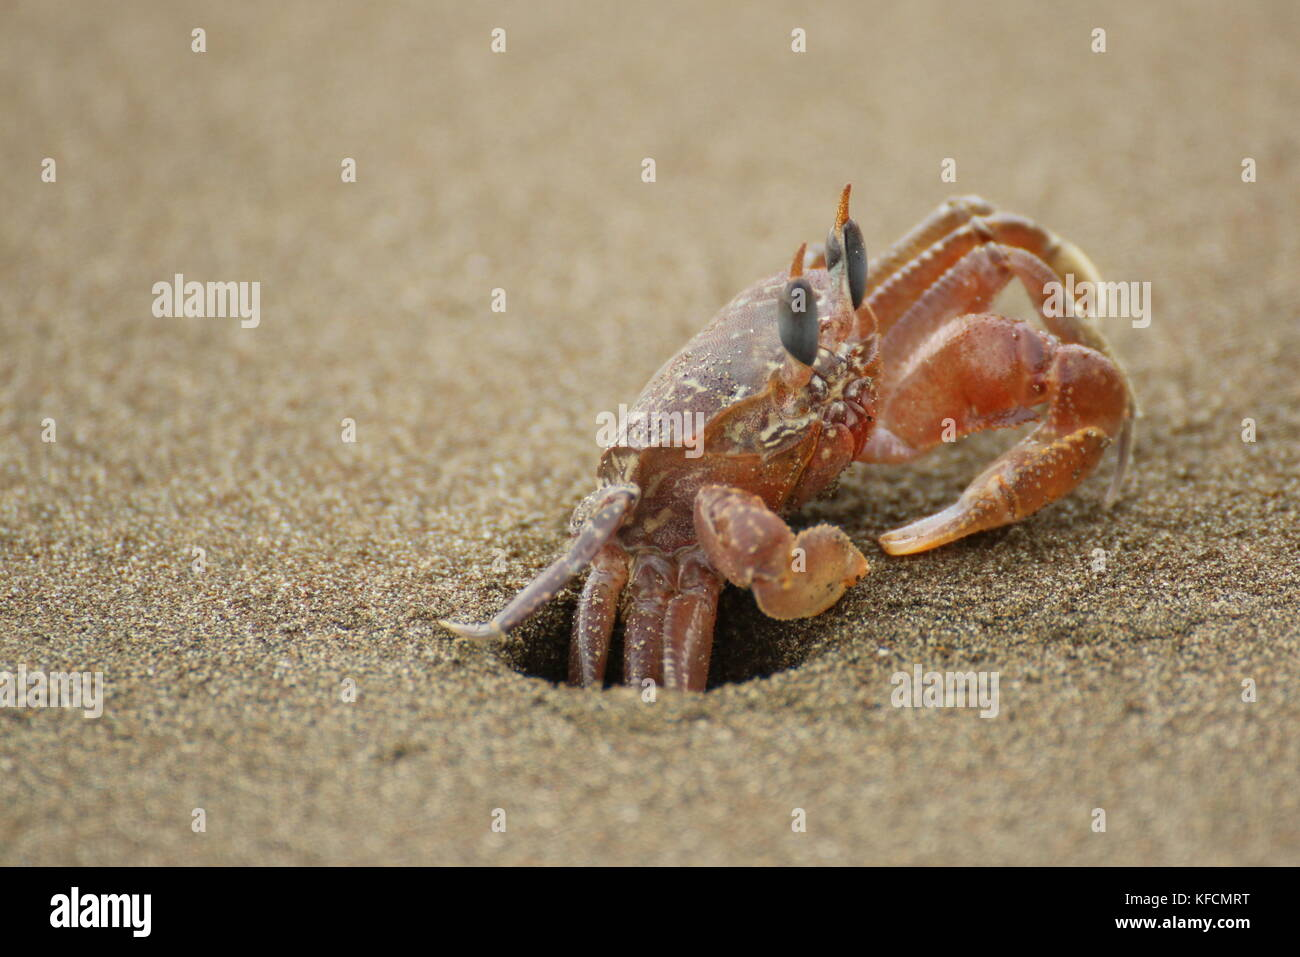 Ghost crab (Ocypode sp.) close up, hiding in his hole in the sand. Ballena National Park, Costa Rica. Stock Photo